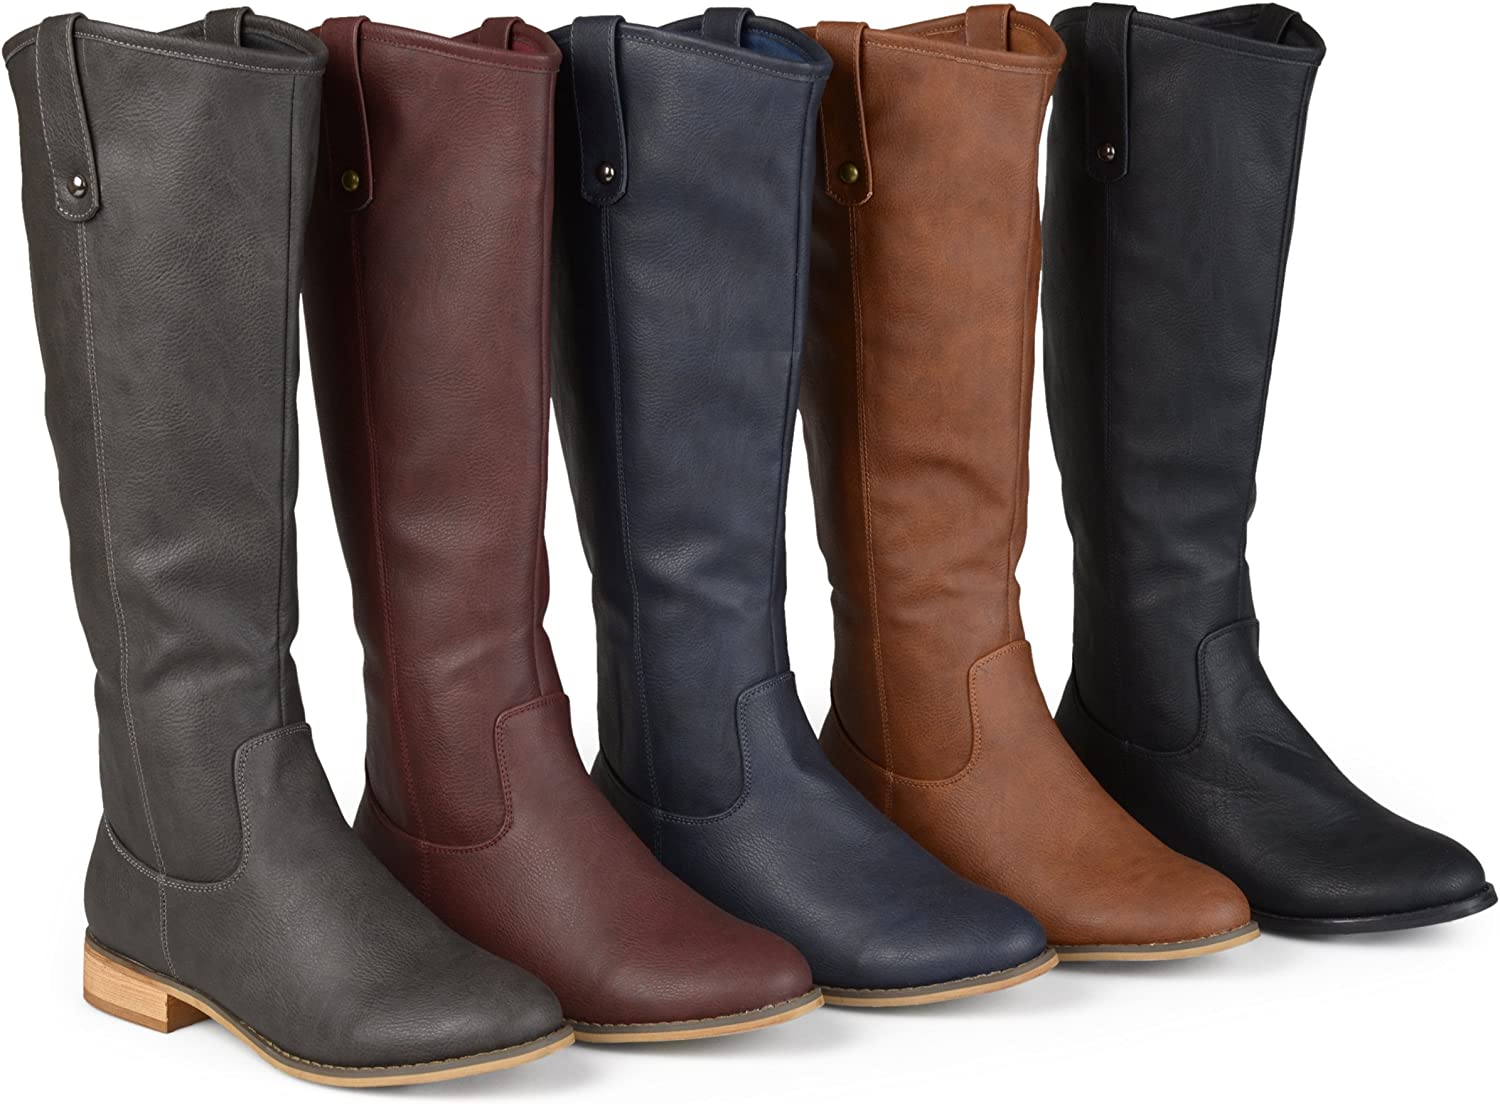 Brinley Co. Womens Faux Leather Regular, Wide and Extra Wide Calf Mid-Calf Round Toe Boots Black, 6 Extra Wide Calf US